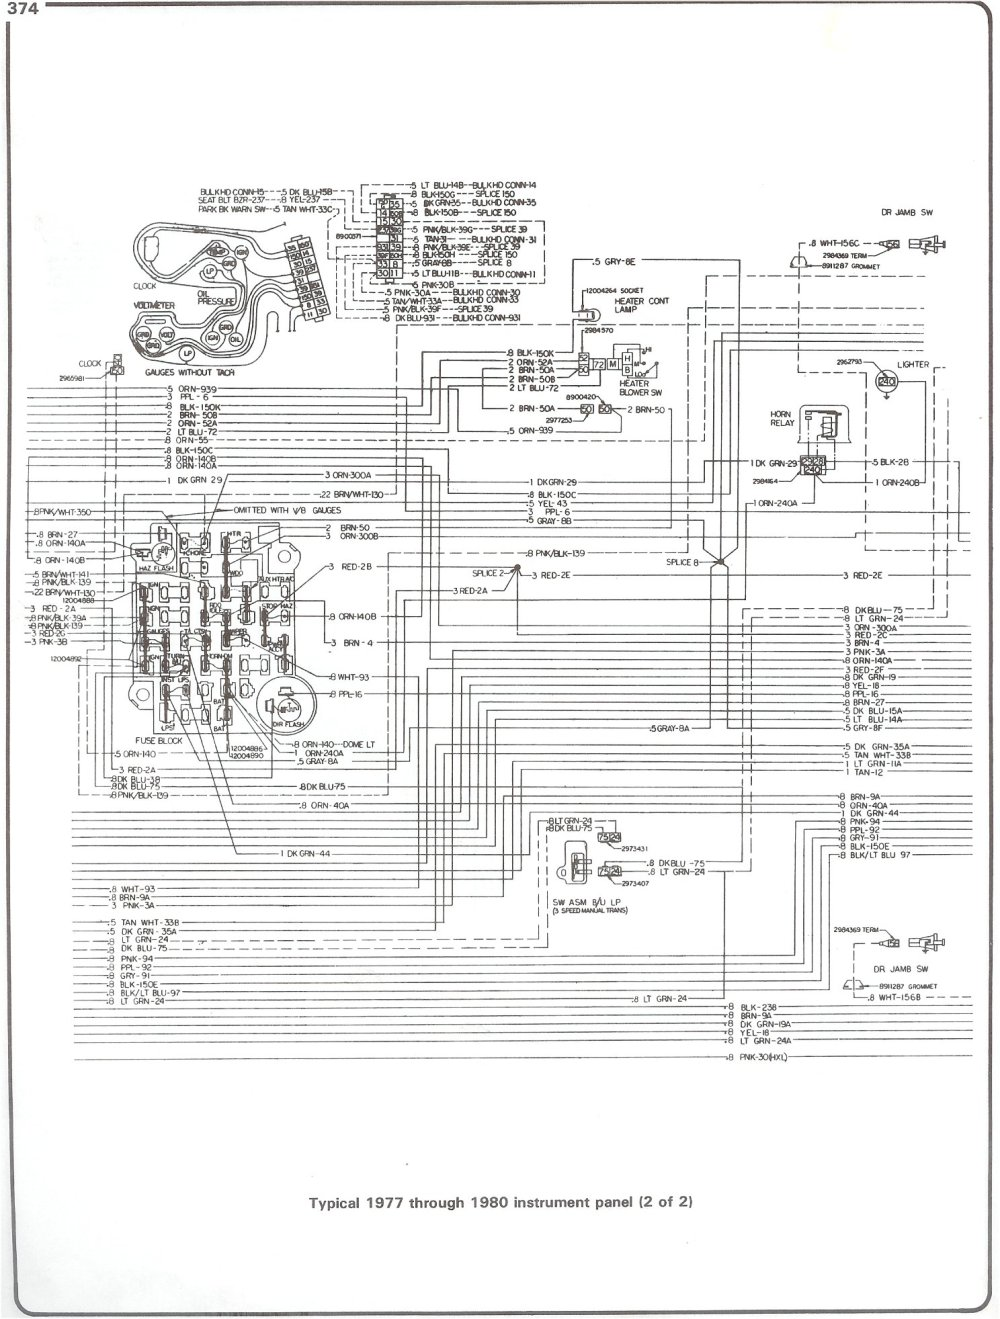 medium resolution of complete 73 87 wiring diagrams evaporator wiring diagram 75 dodge v8 distributor wiring diagram